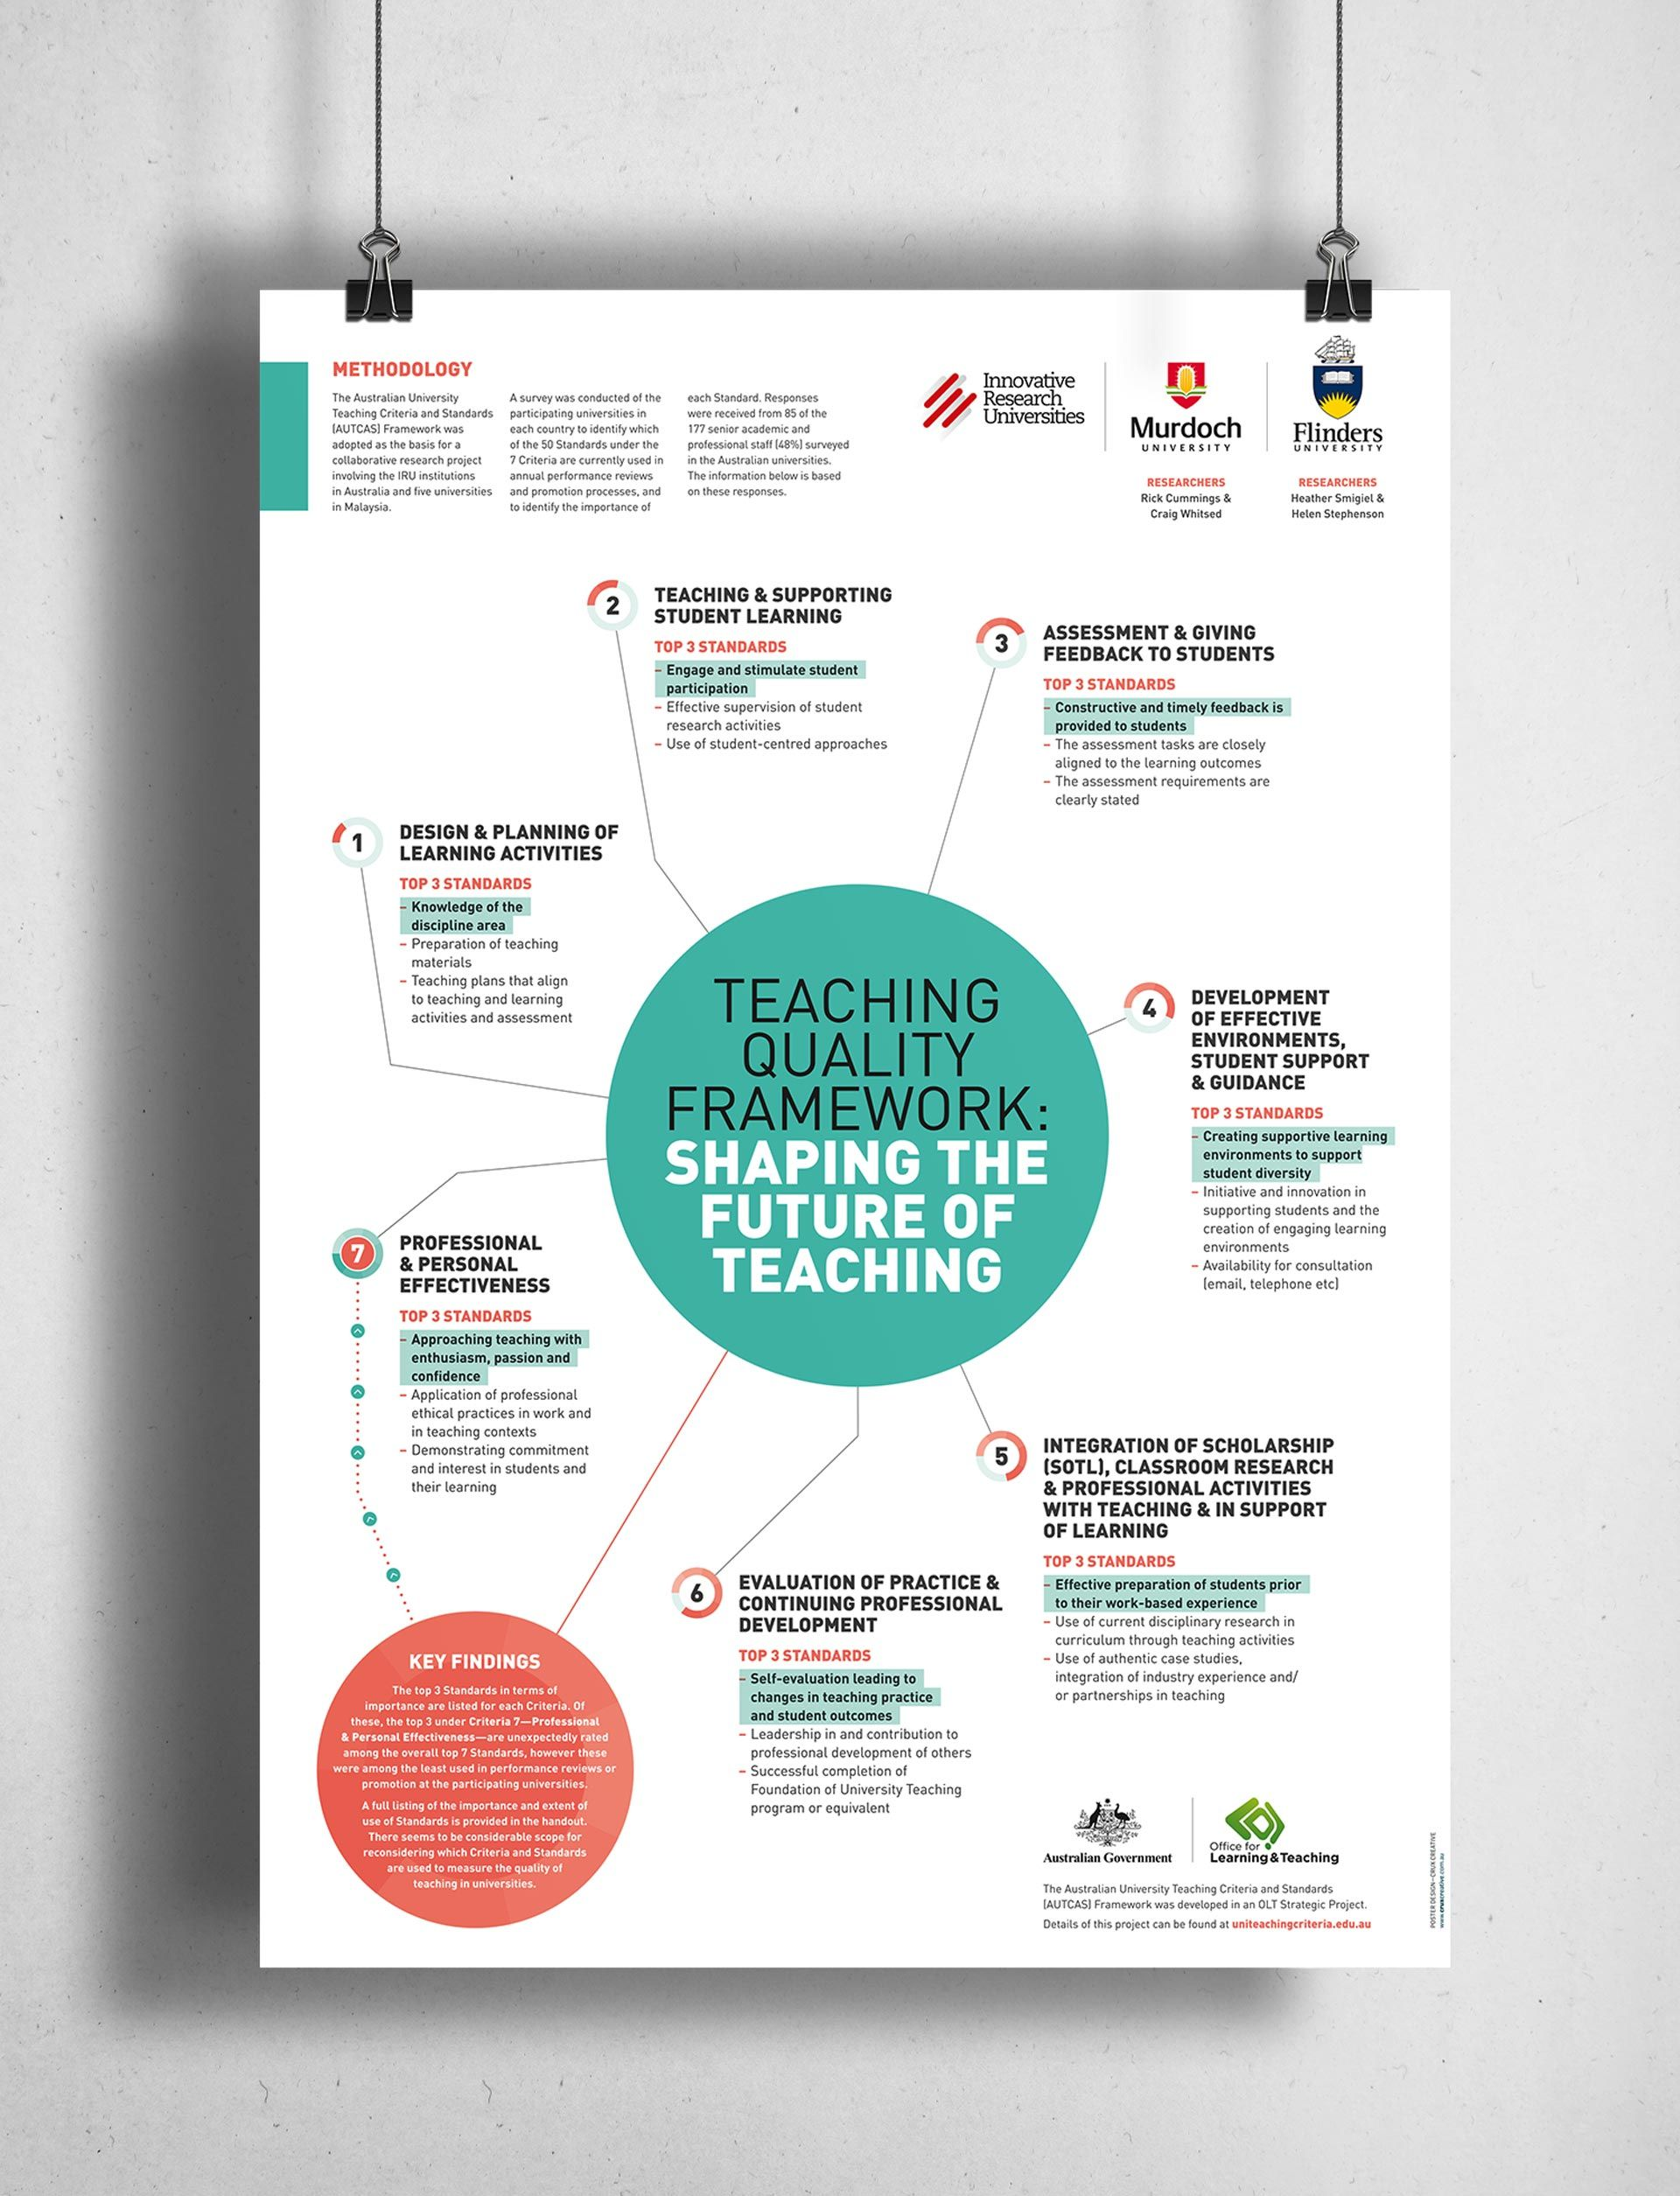 conference-poster-education-teaching-auscas-murdoch-uni … | Pinteres… for Education Creative Poster Designs  53kxo